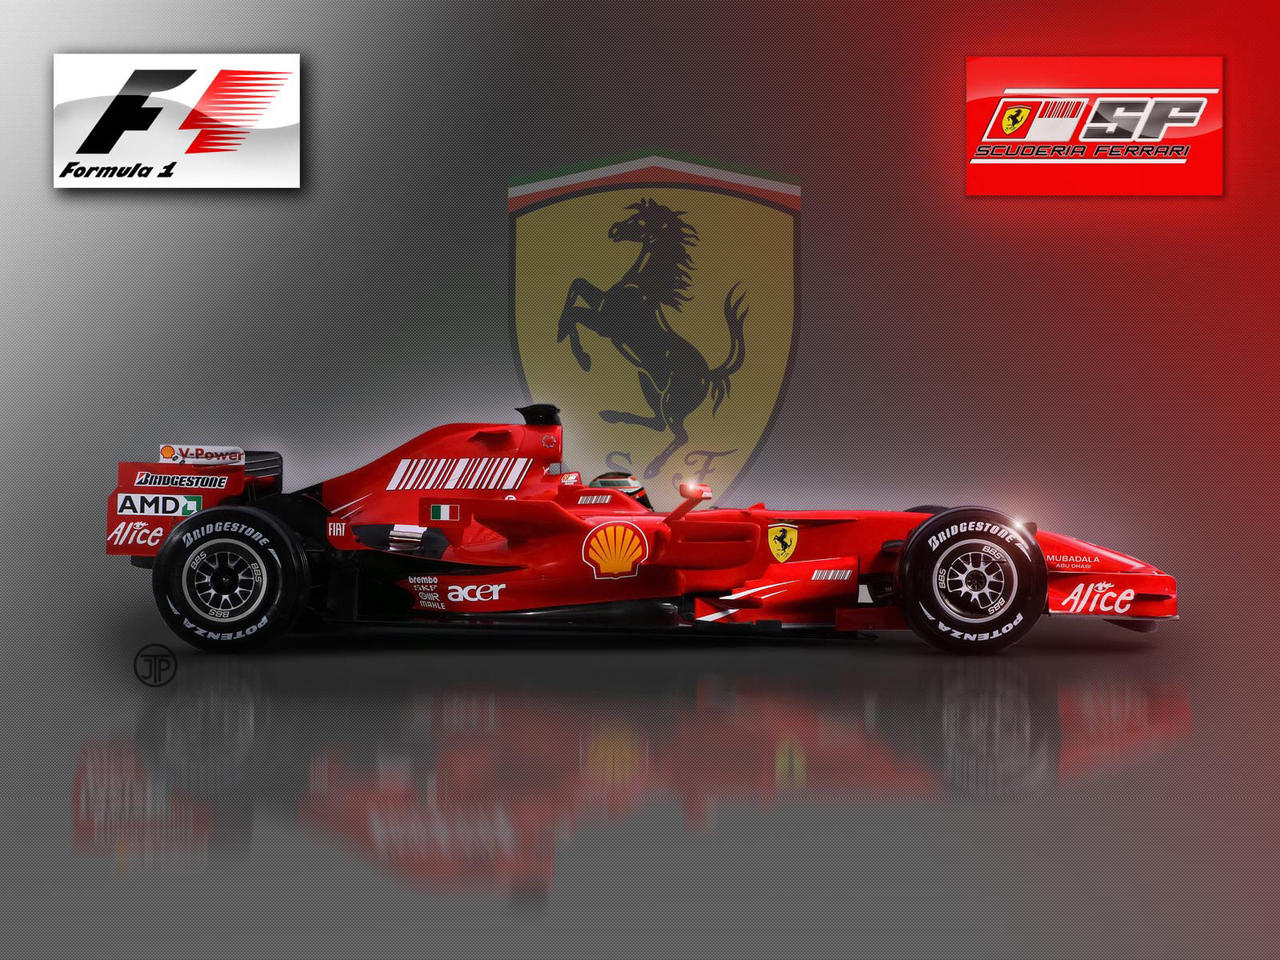 Ferrari f1 fan shop